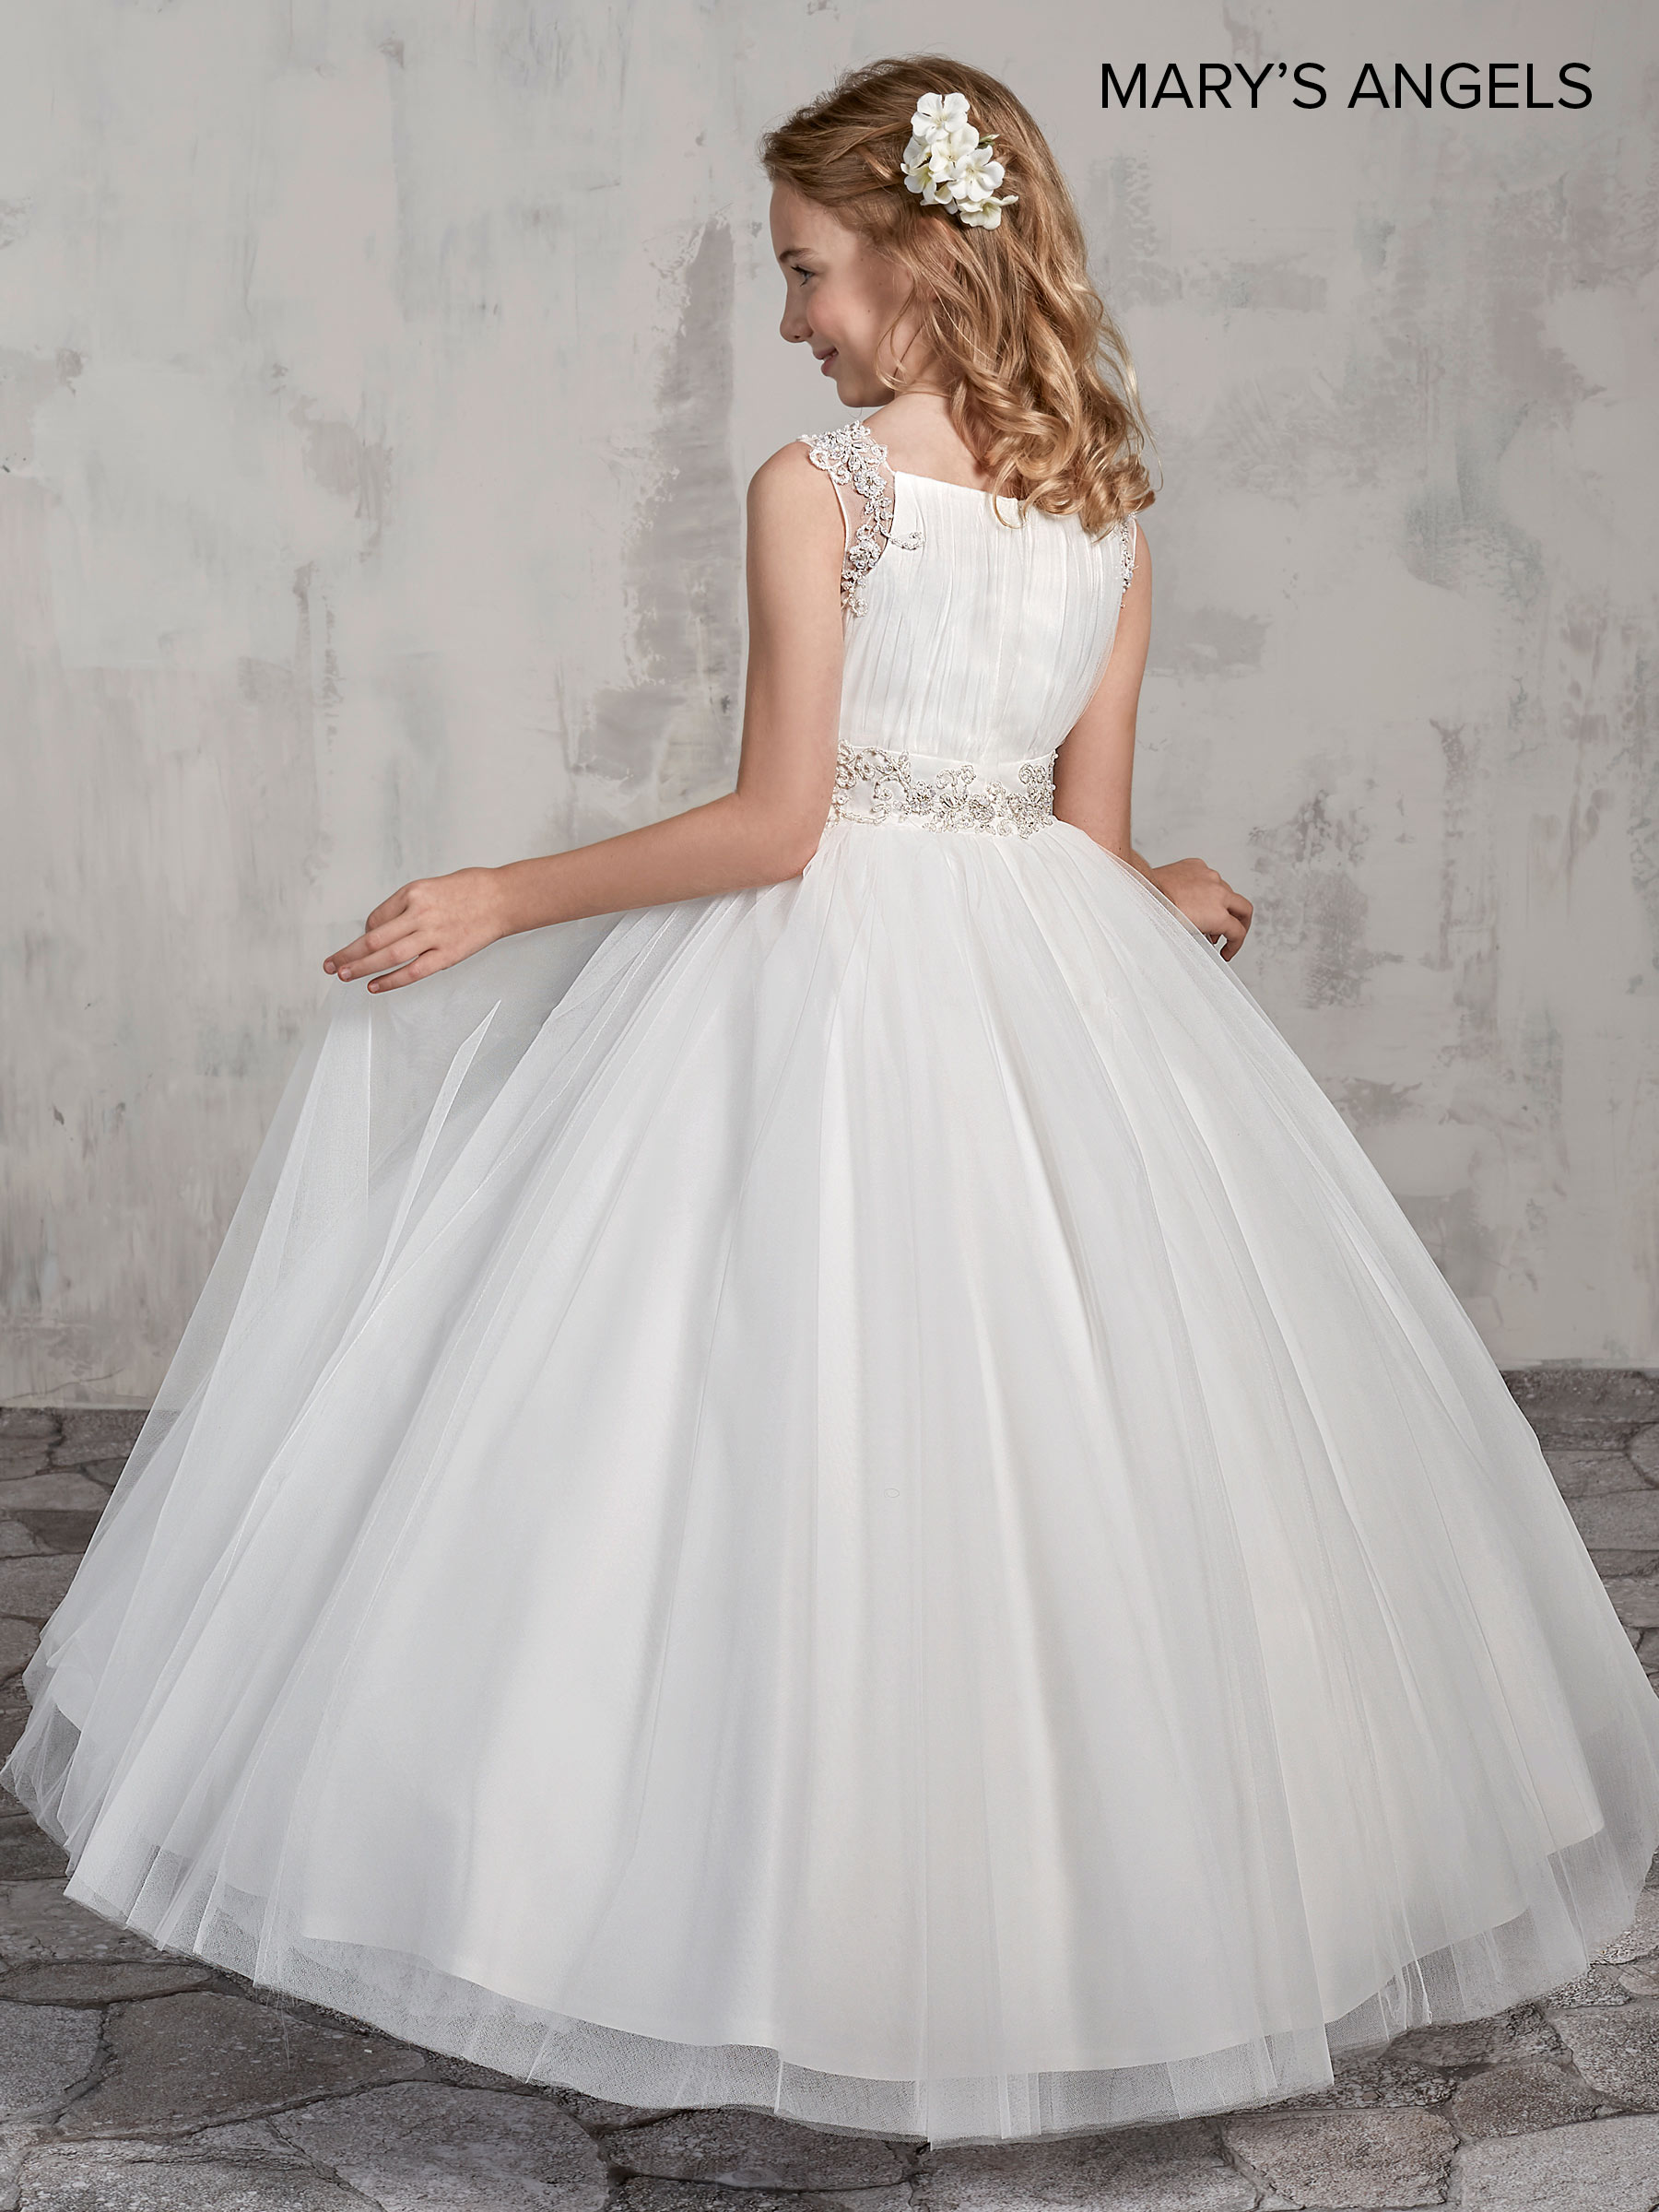 Angel Flower Girl Dresses | Mary's Angels | Style - MB9013